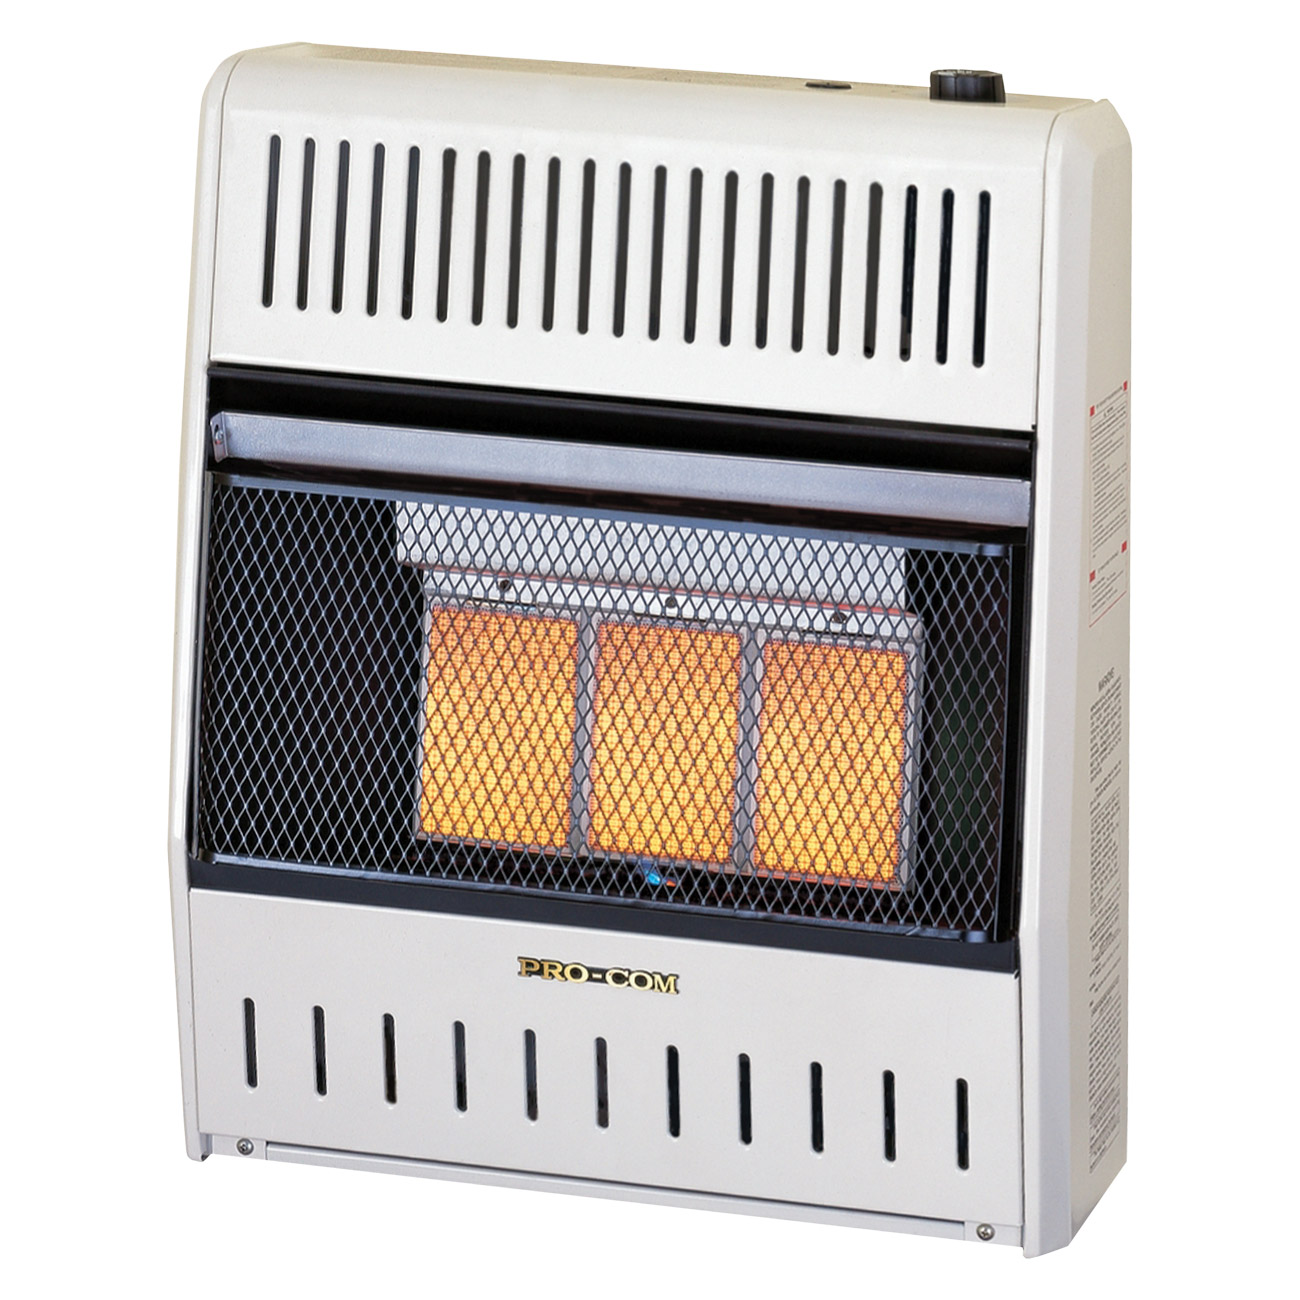 Procom Infrared Ventless Liquid Propane Space Heater